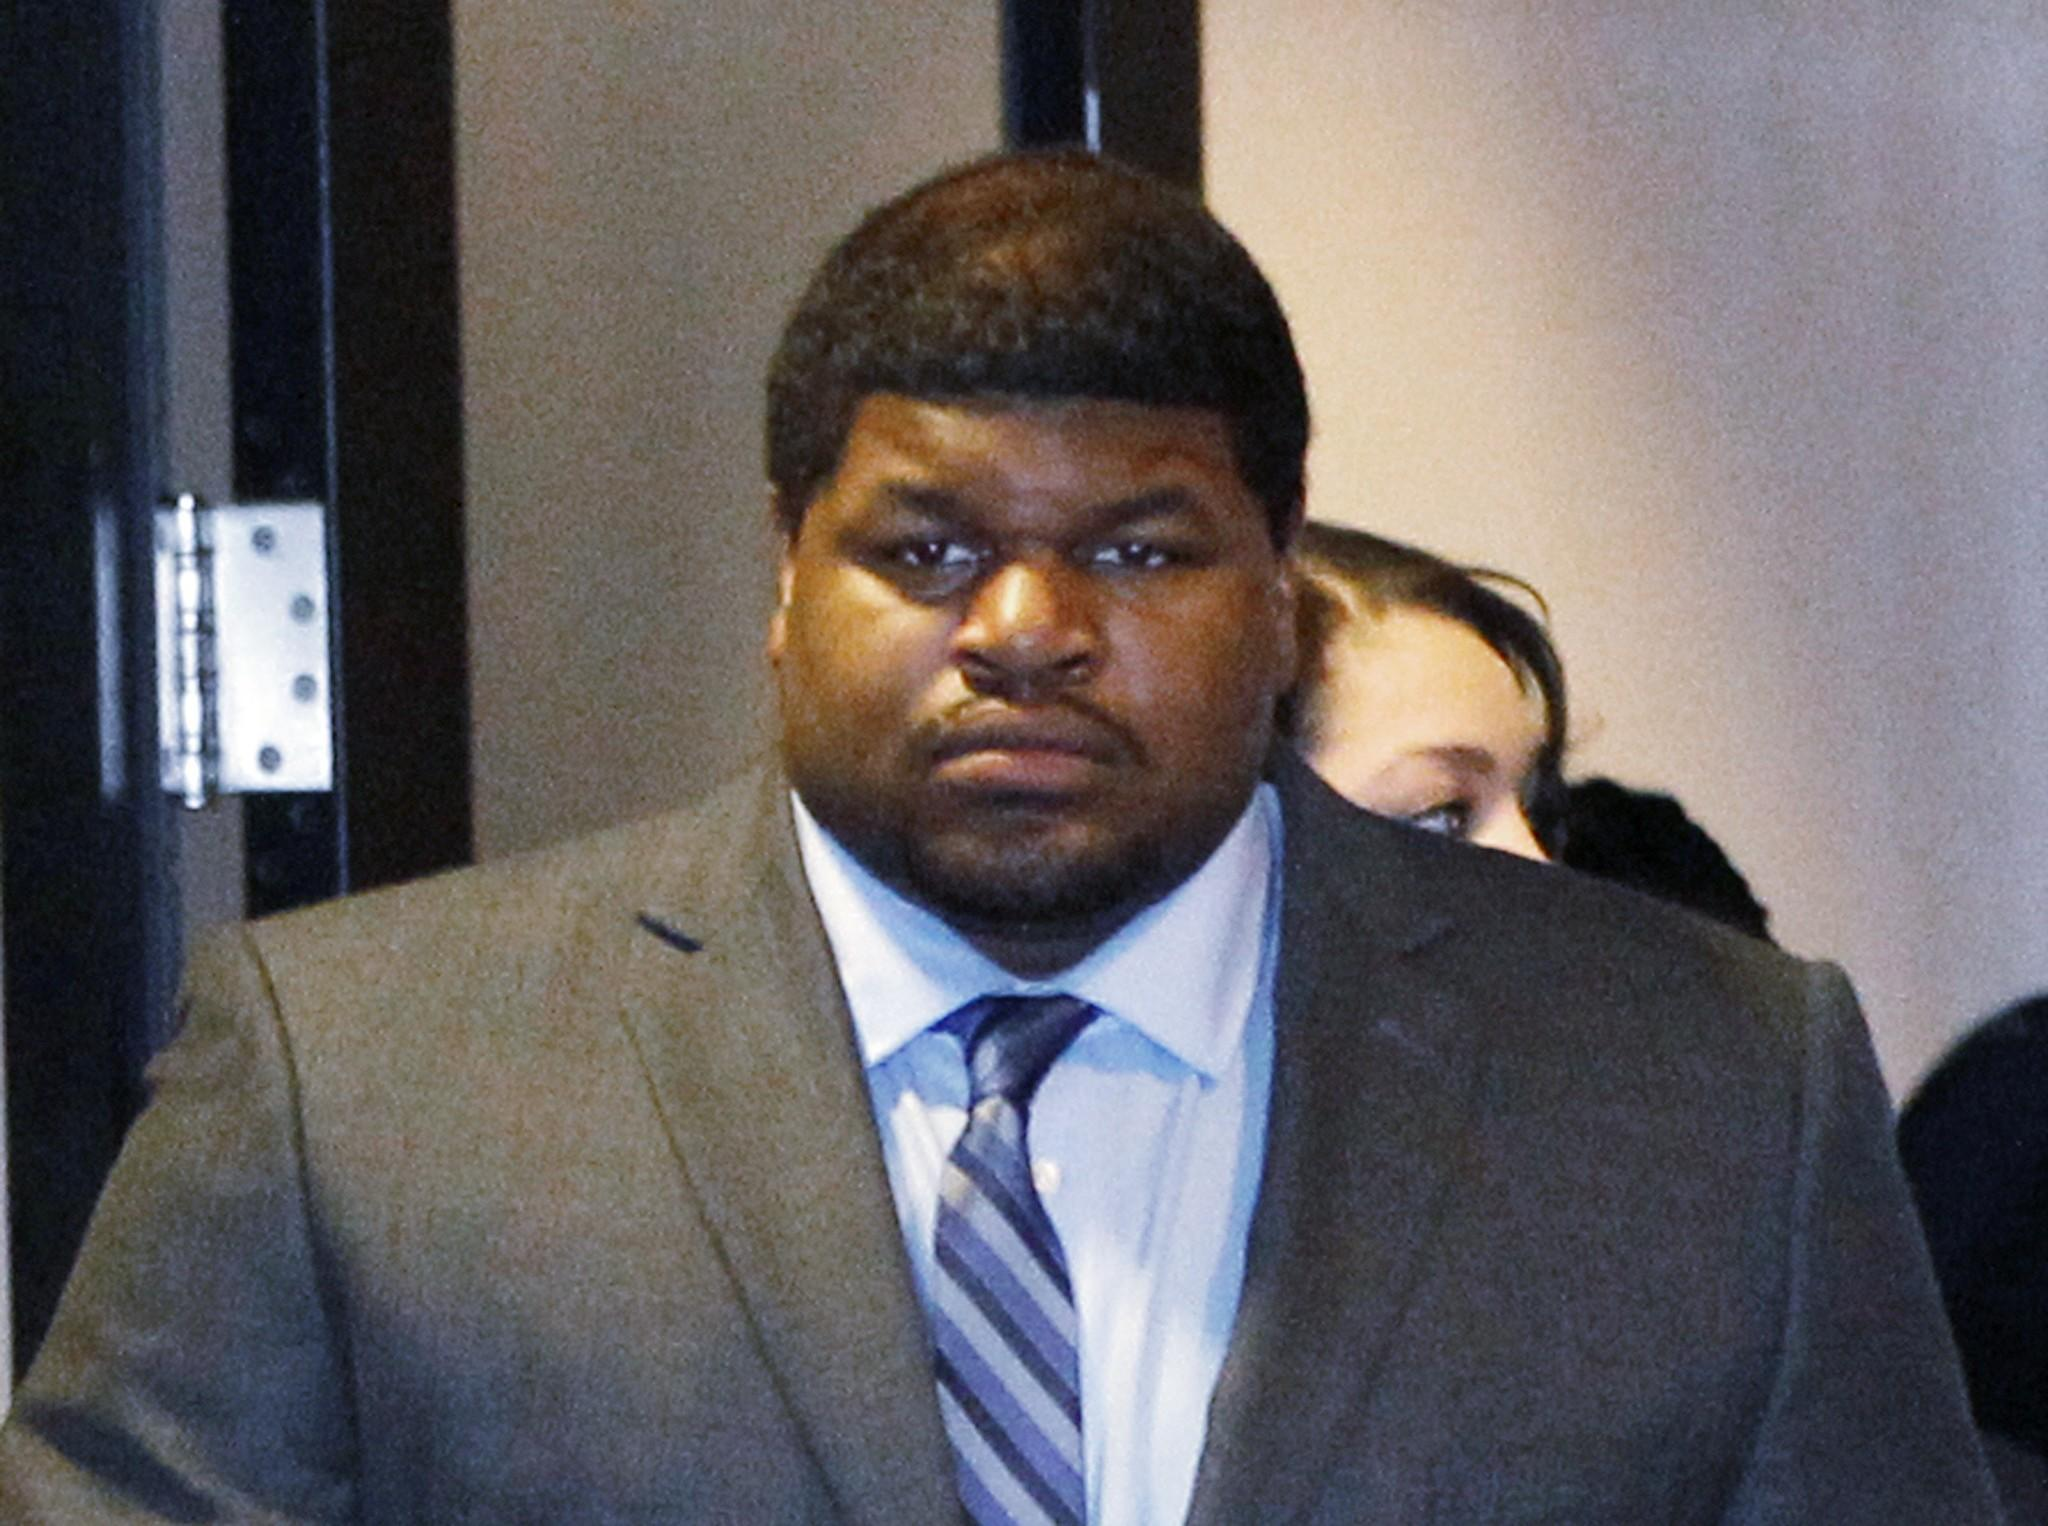 Former Cowboys player Josh Brent enters the courtroom in Dallas, Texas in this file photo taken January 14, 2014. A jury found Brent guilty of intoxication manslaughter charges on Wednesday, after he crashed his car, killing his friend and teammate Jerry Brown in 2012.